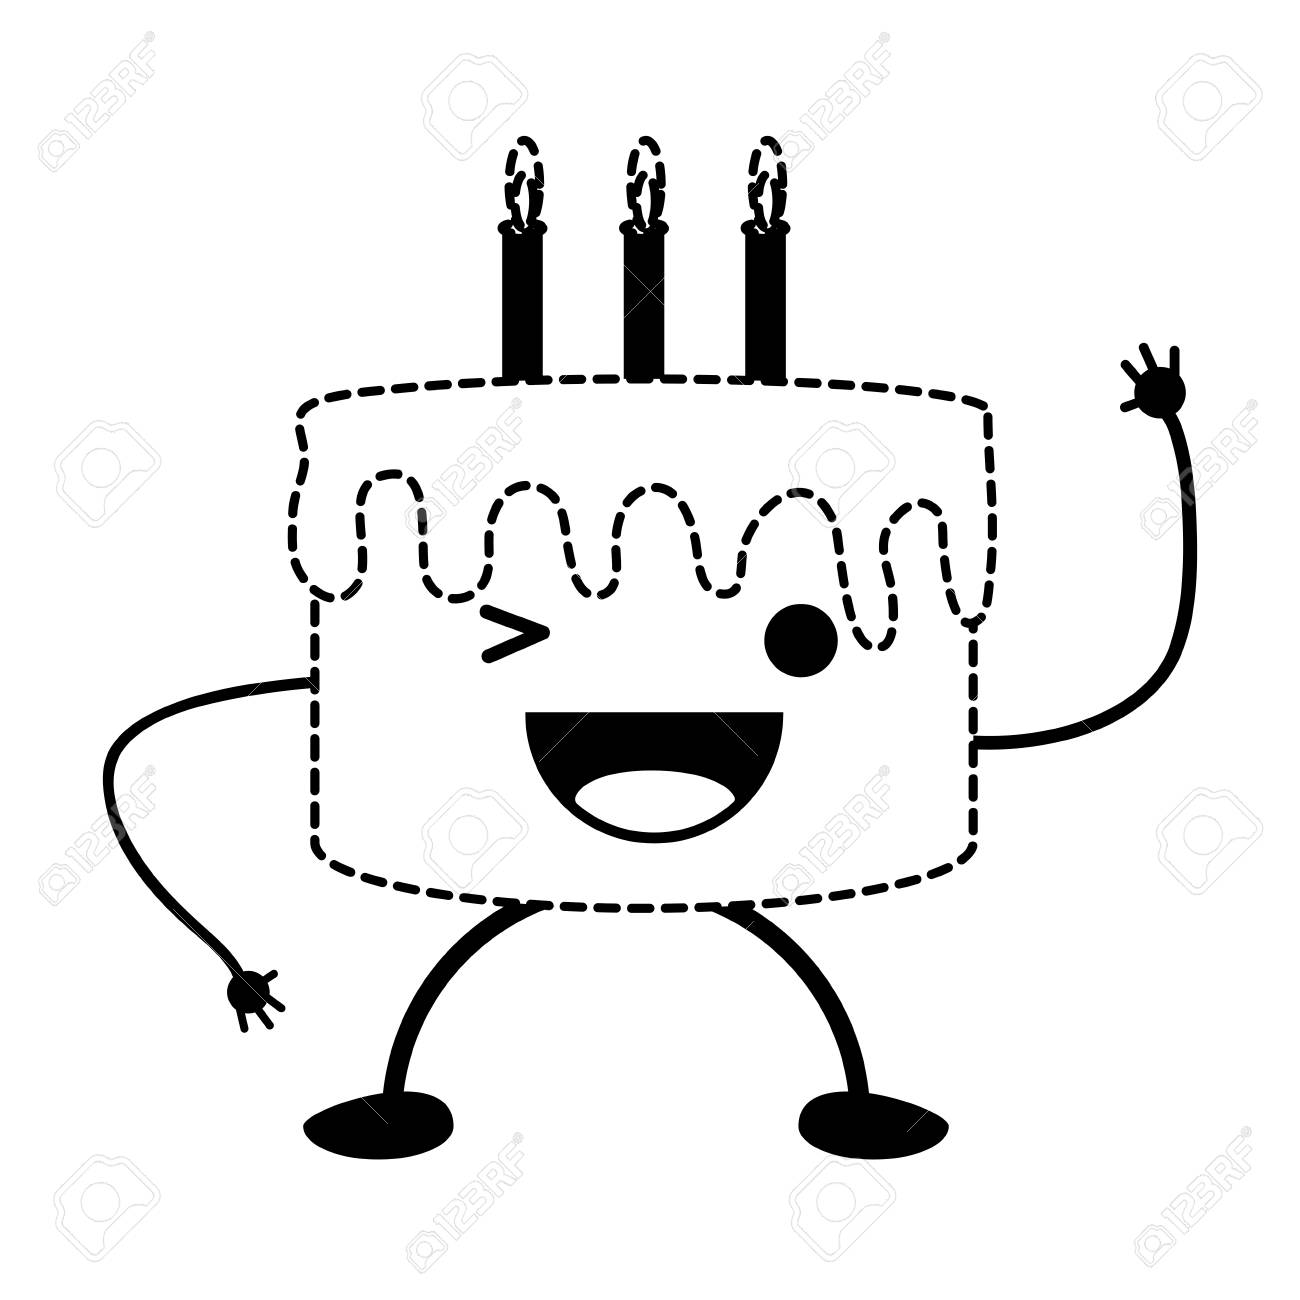 Kawaii Birthday Cake Icon Royalty Free Cliparts Vectors And Stock